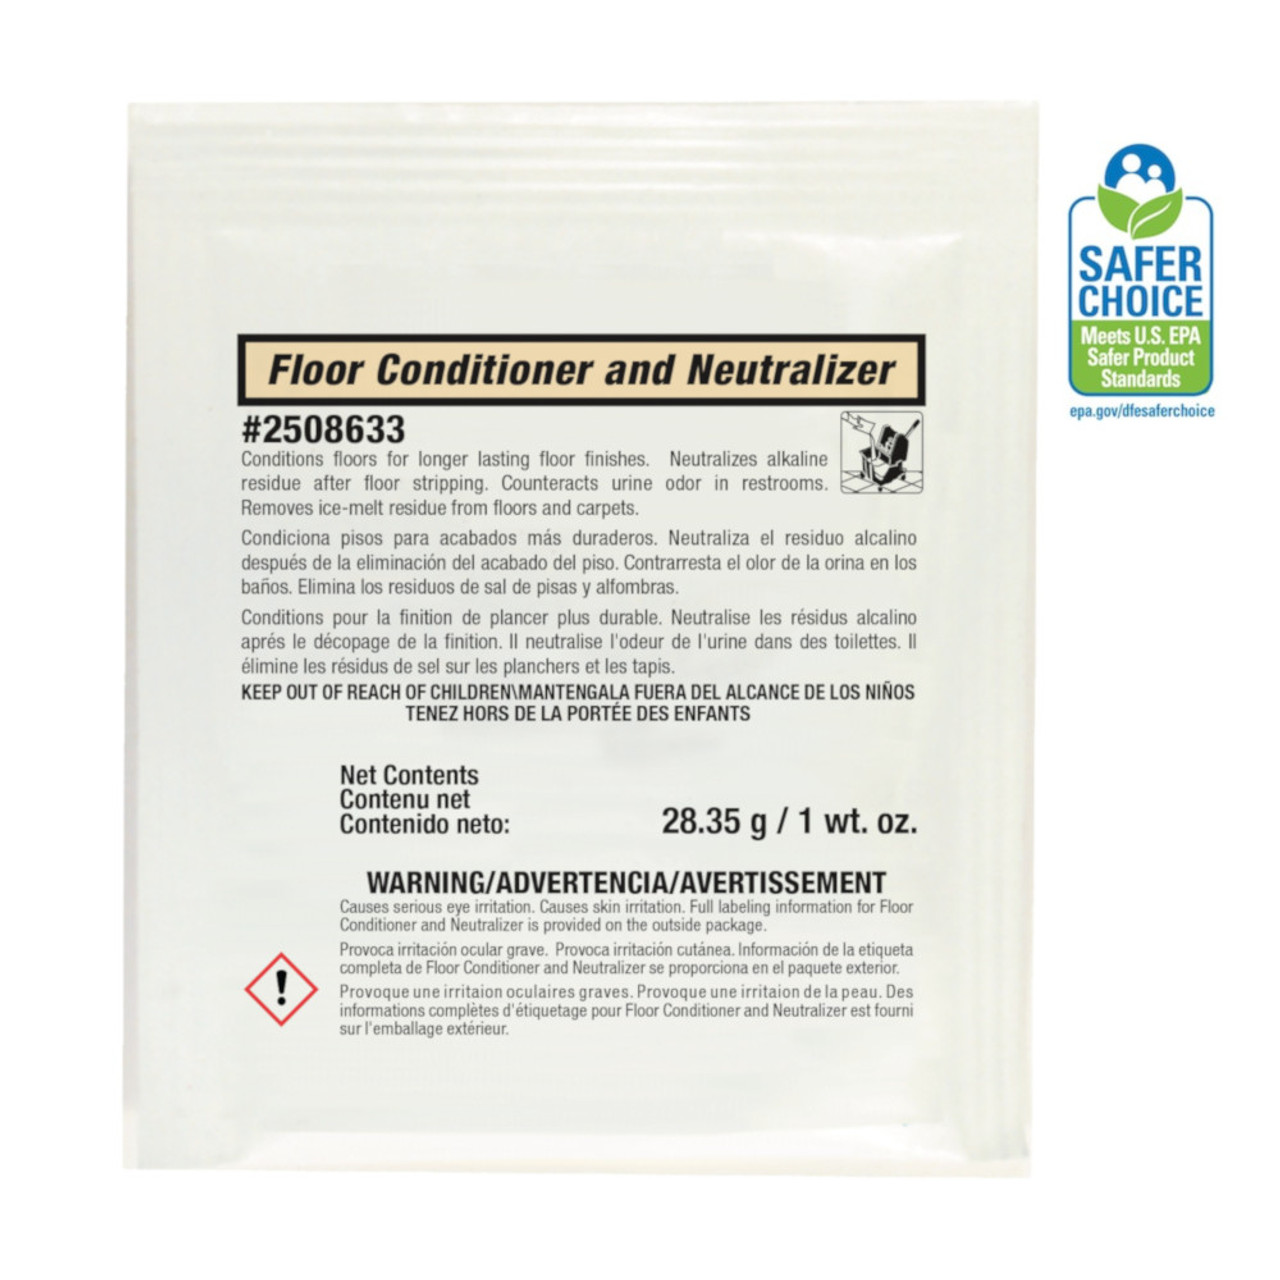 Stearns Floor Conditional and Neutralizer conditions floors after stripping and is great for urine odors in restrooms.